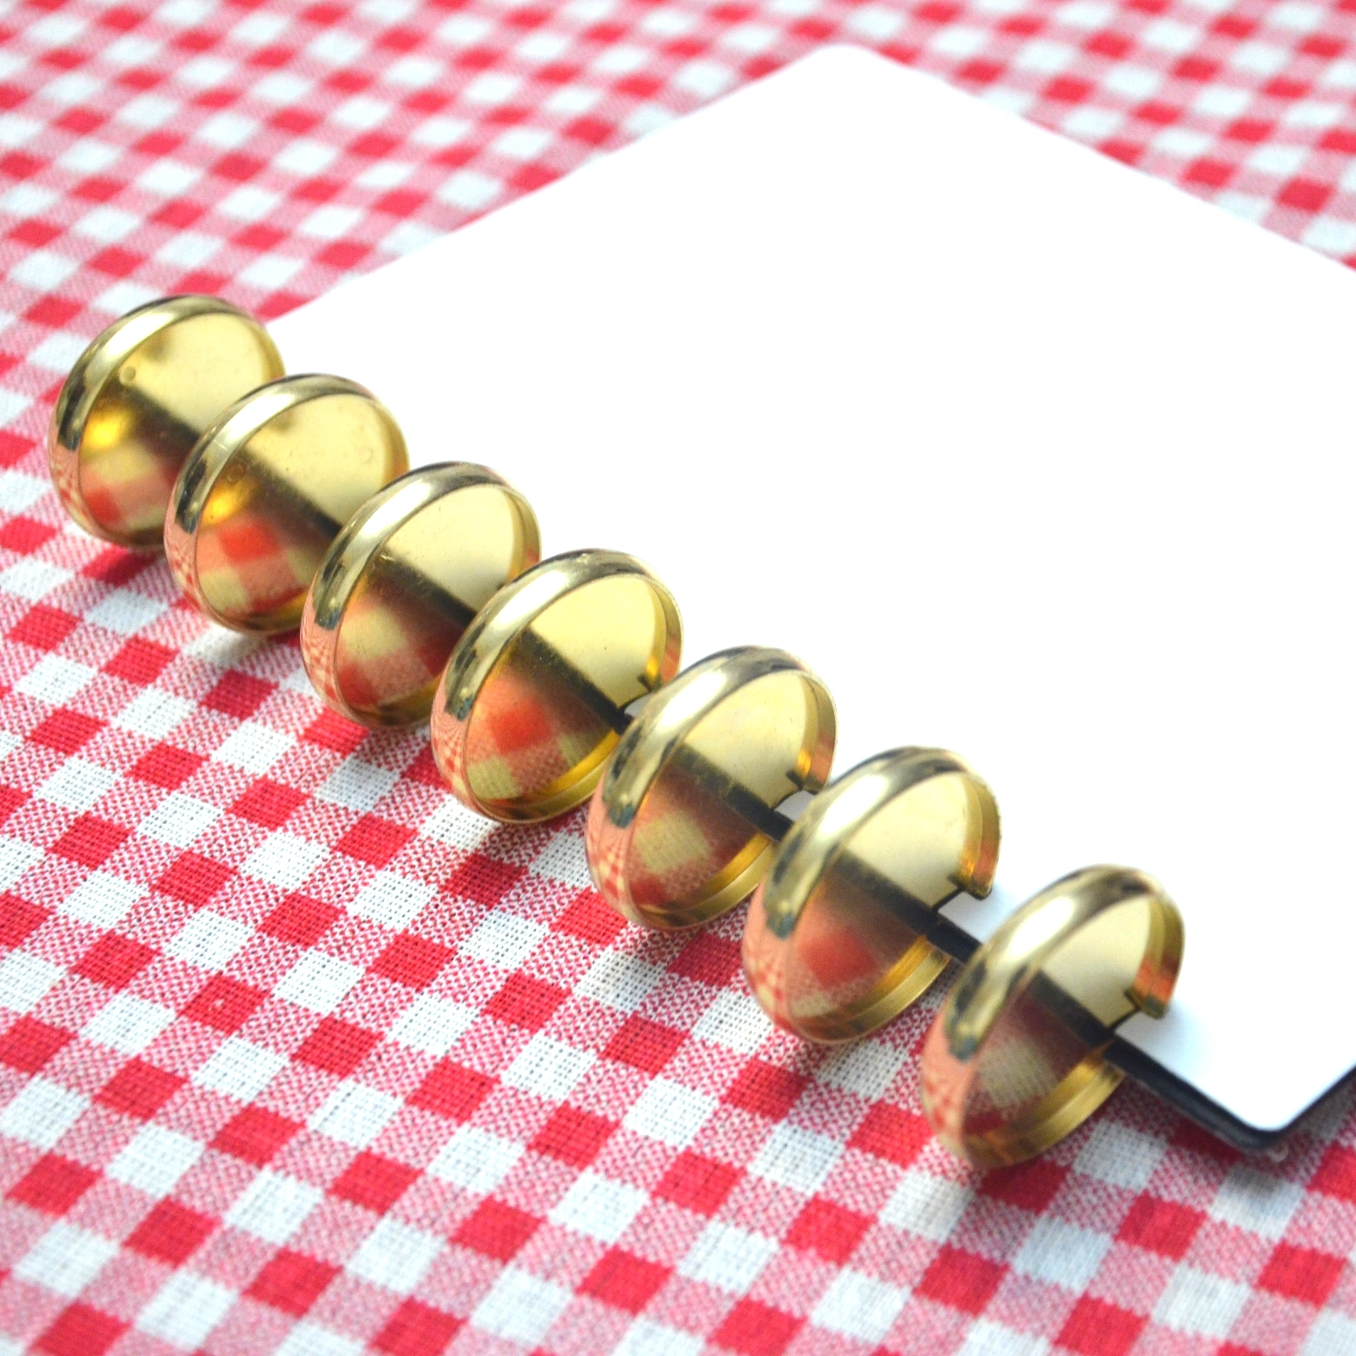 12pcs 35mm Disc Binding A4 Binder Ring For Notebook Paper Ring Planner Ring Binder Mushroom Hole Binder Gold Binding Discs